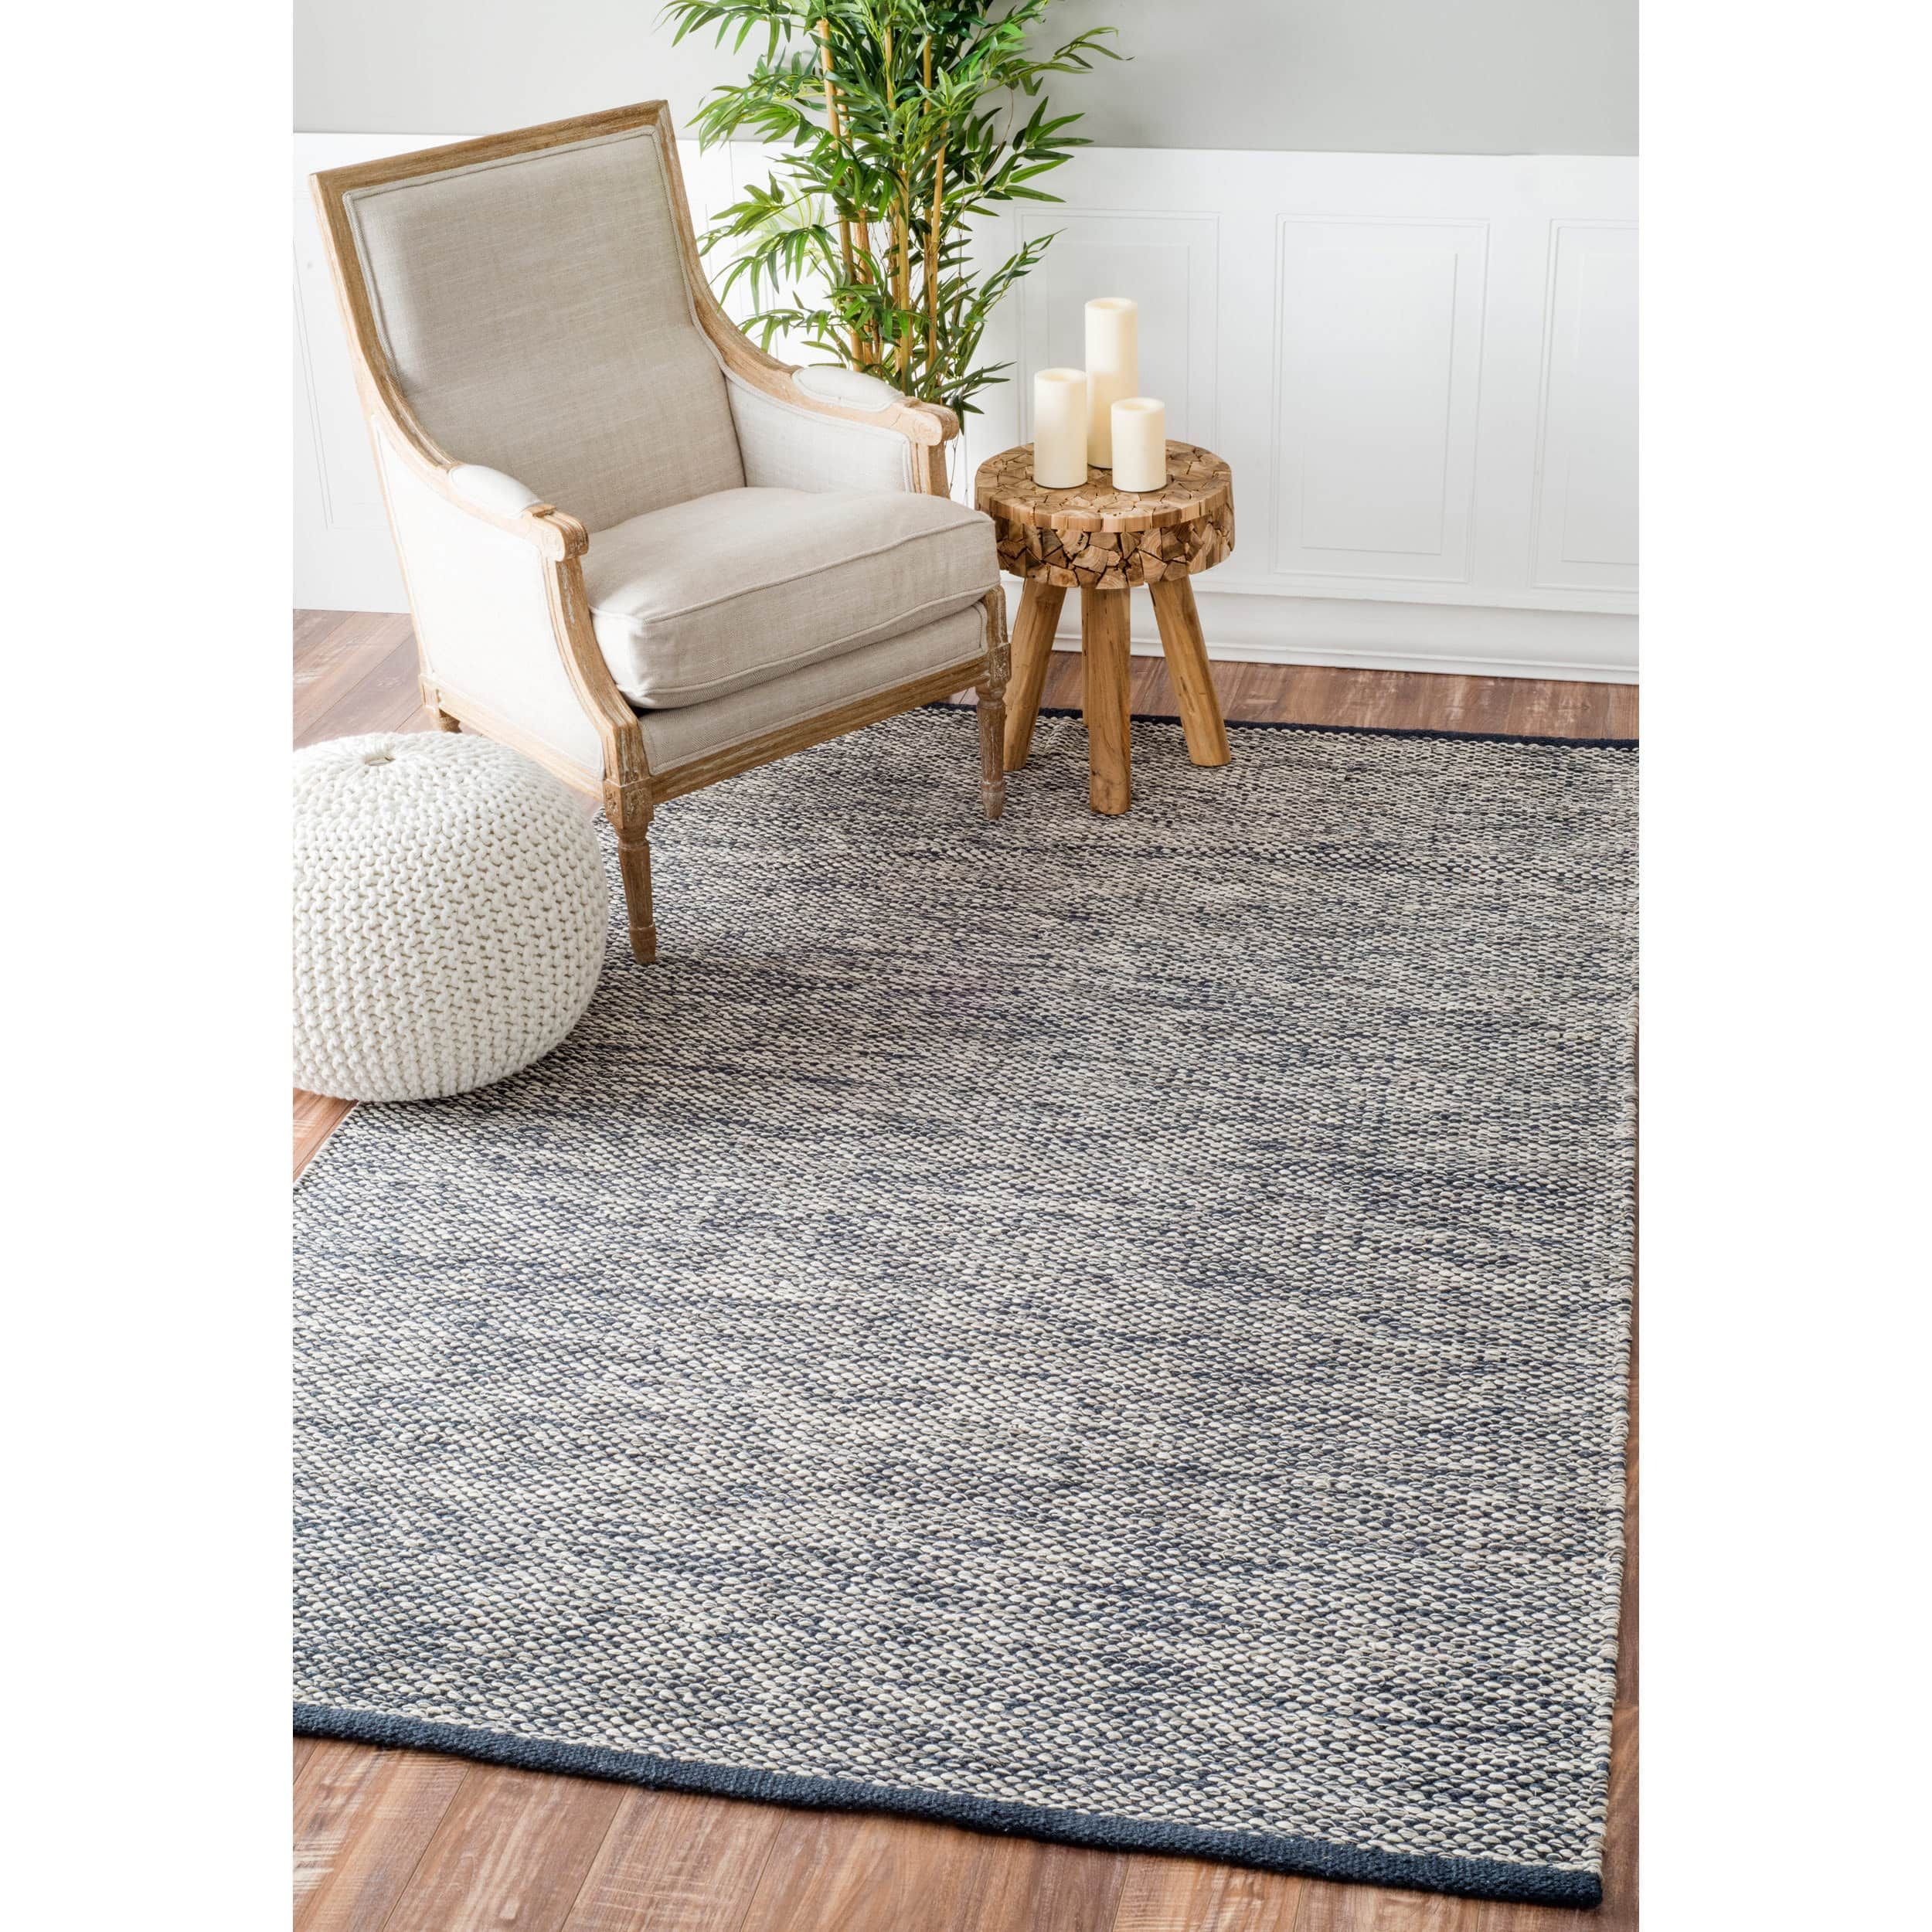 Nuloom Handmade Flatweave Contemporary Solid Cotton Grey Rug 7 6 X 9 6 Overstock Com Shopping The Best Deals On 7x9 10x14 Solid Rugs Rugs Usa Cool Rugs